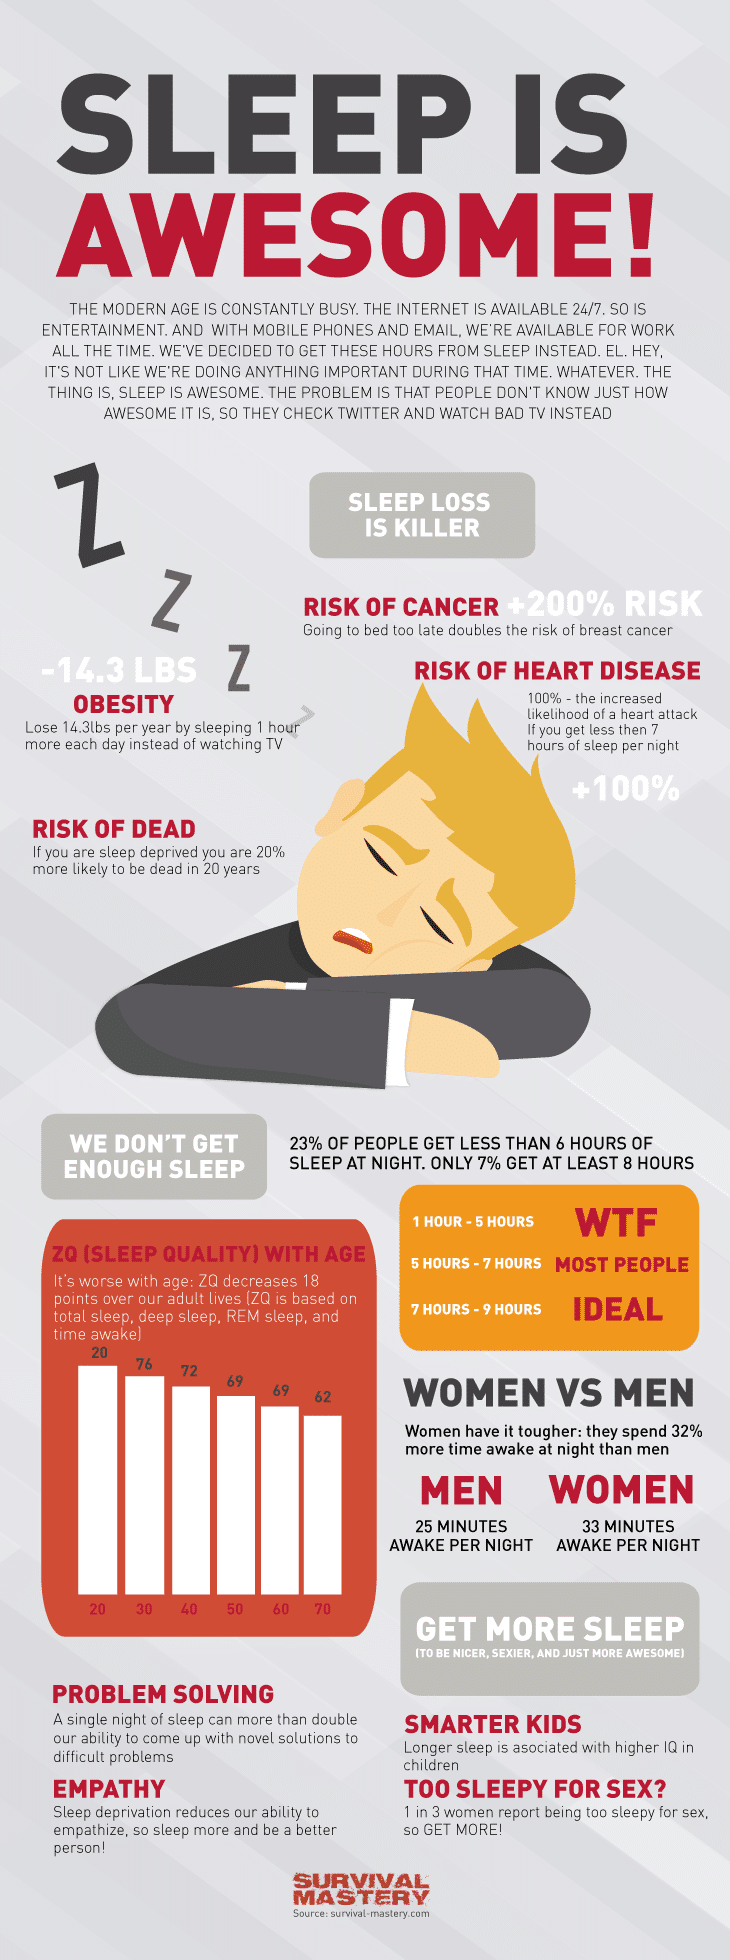 Sleep awesome infographic